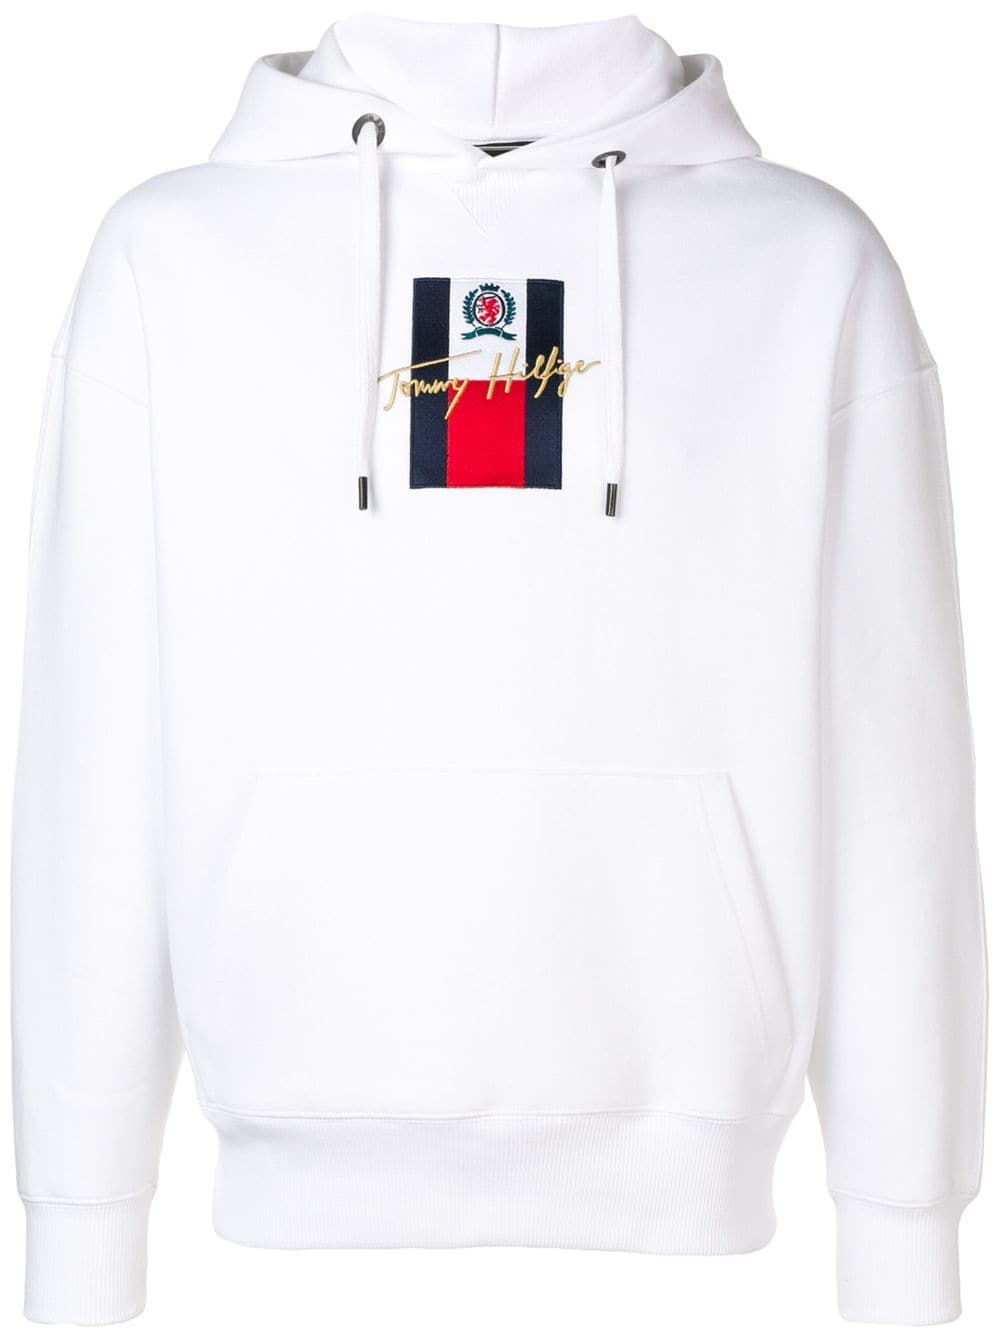 Tommy Hilfiger Logo Embroidered Hoodie In White Modesens Embroidered Hoodie Hoodies Tommy Hilfiger Outfit [ 1334 x 1000 Pixel ]